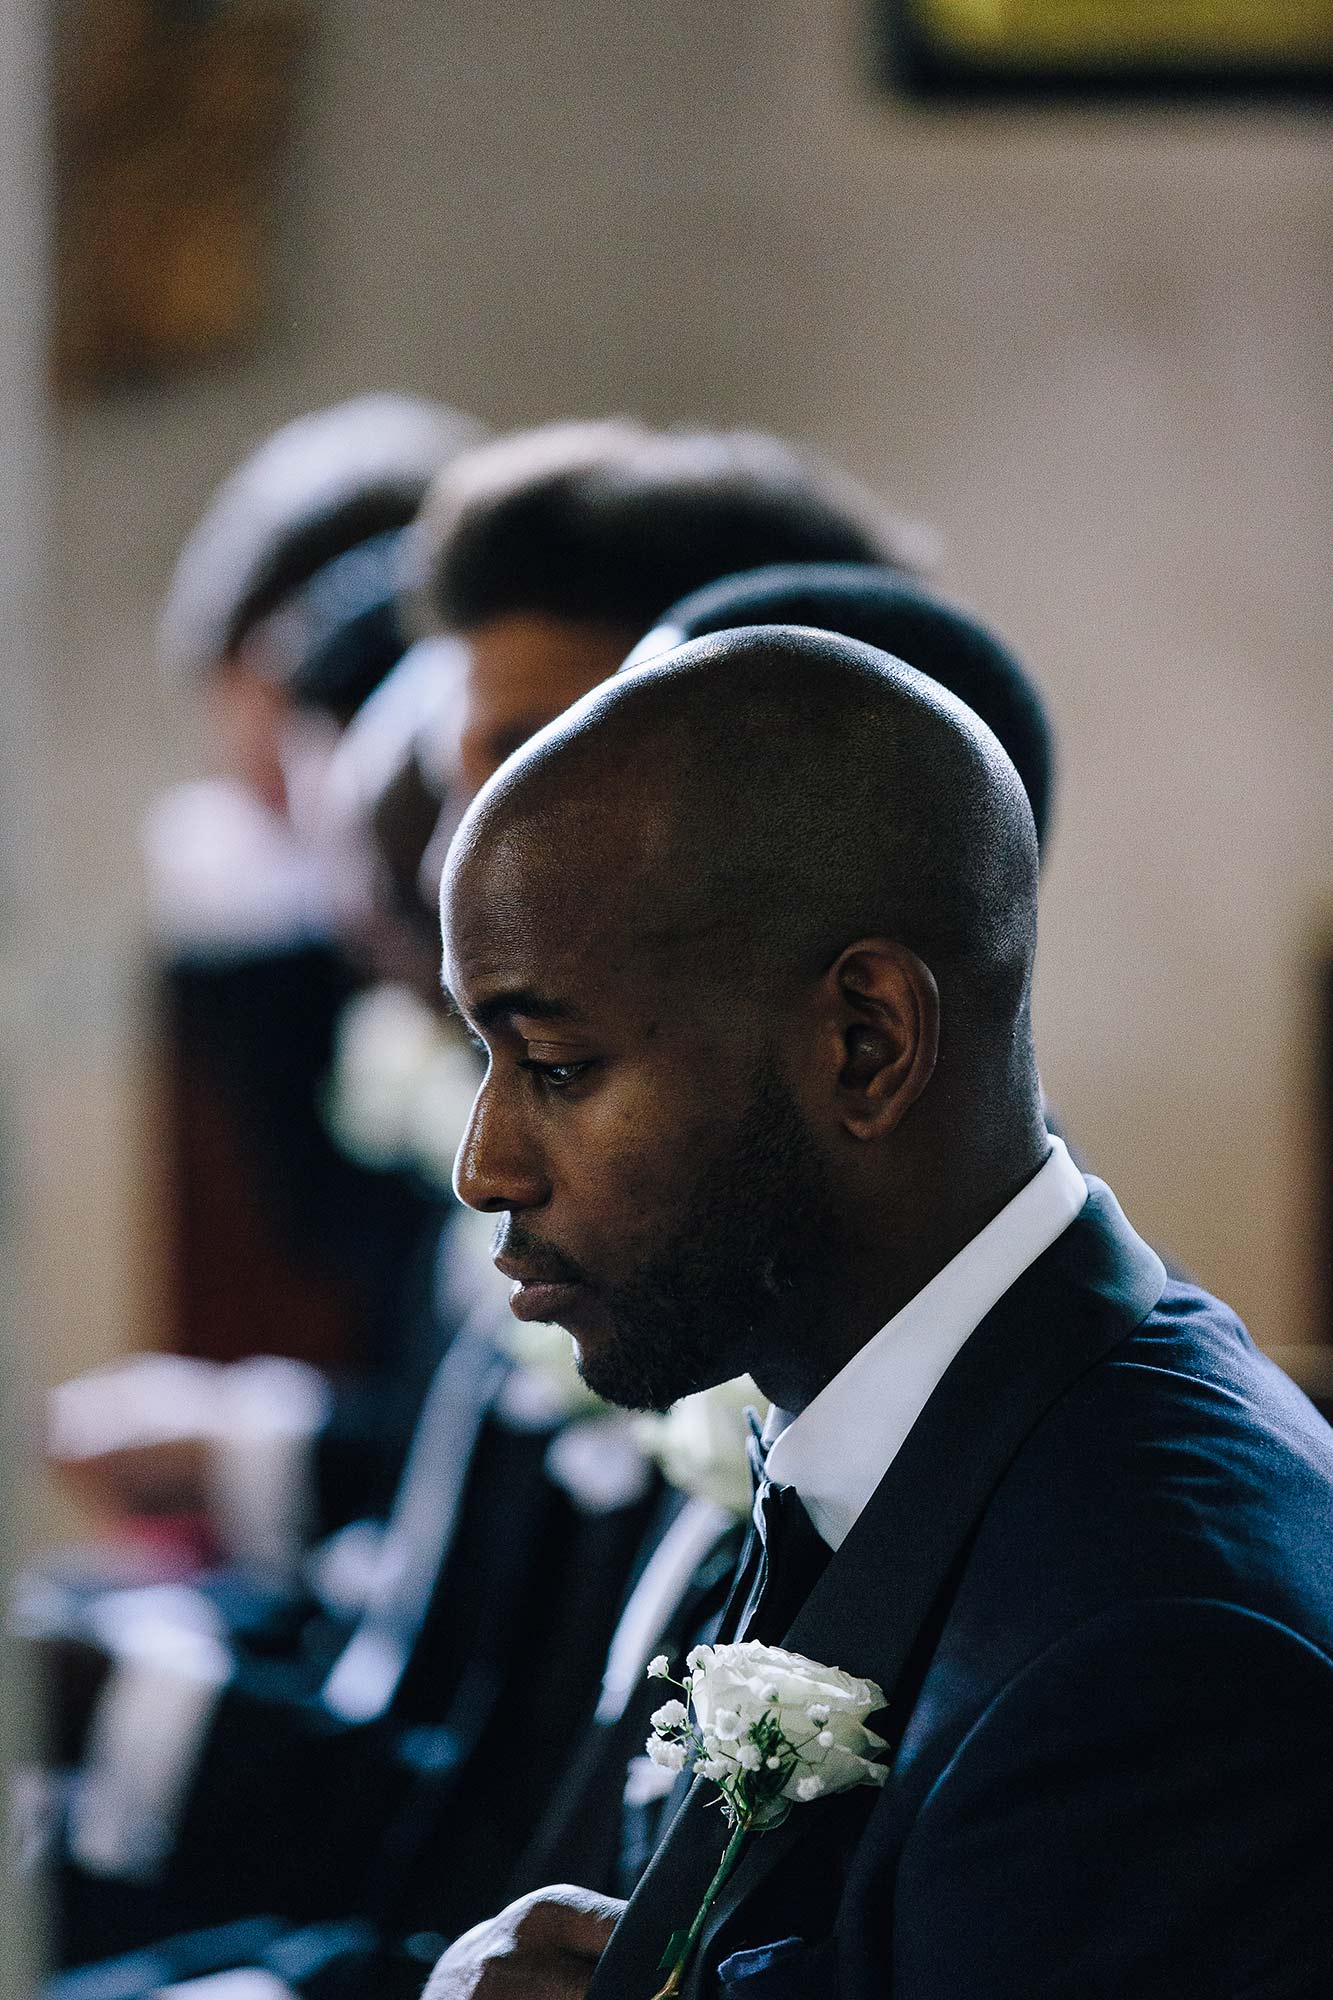 Groom moments before the wedding ceremony